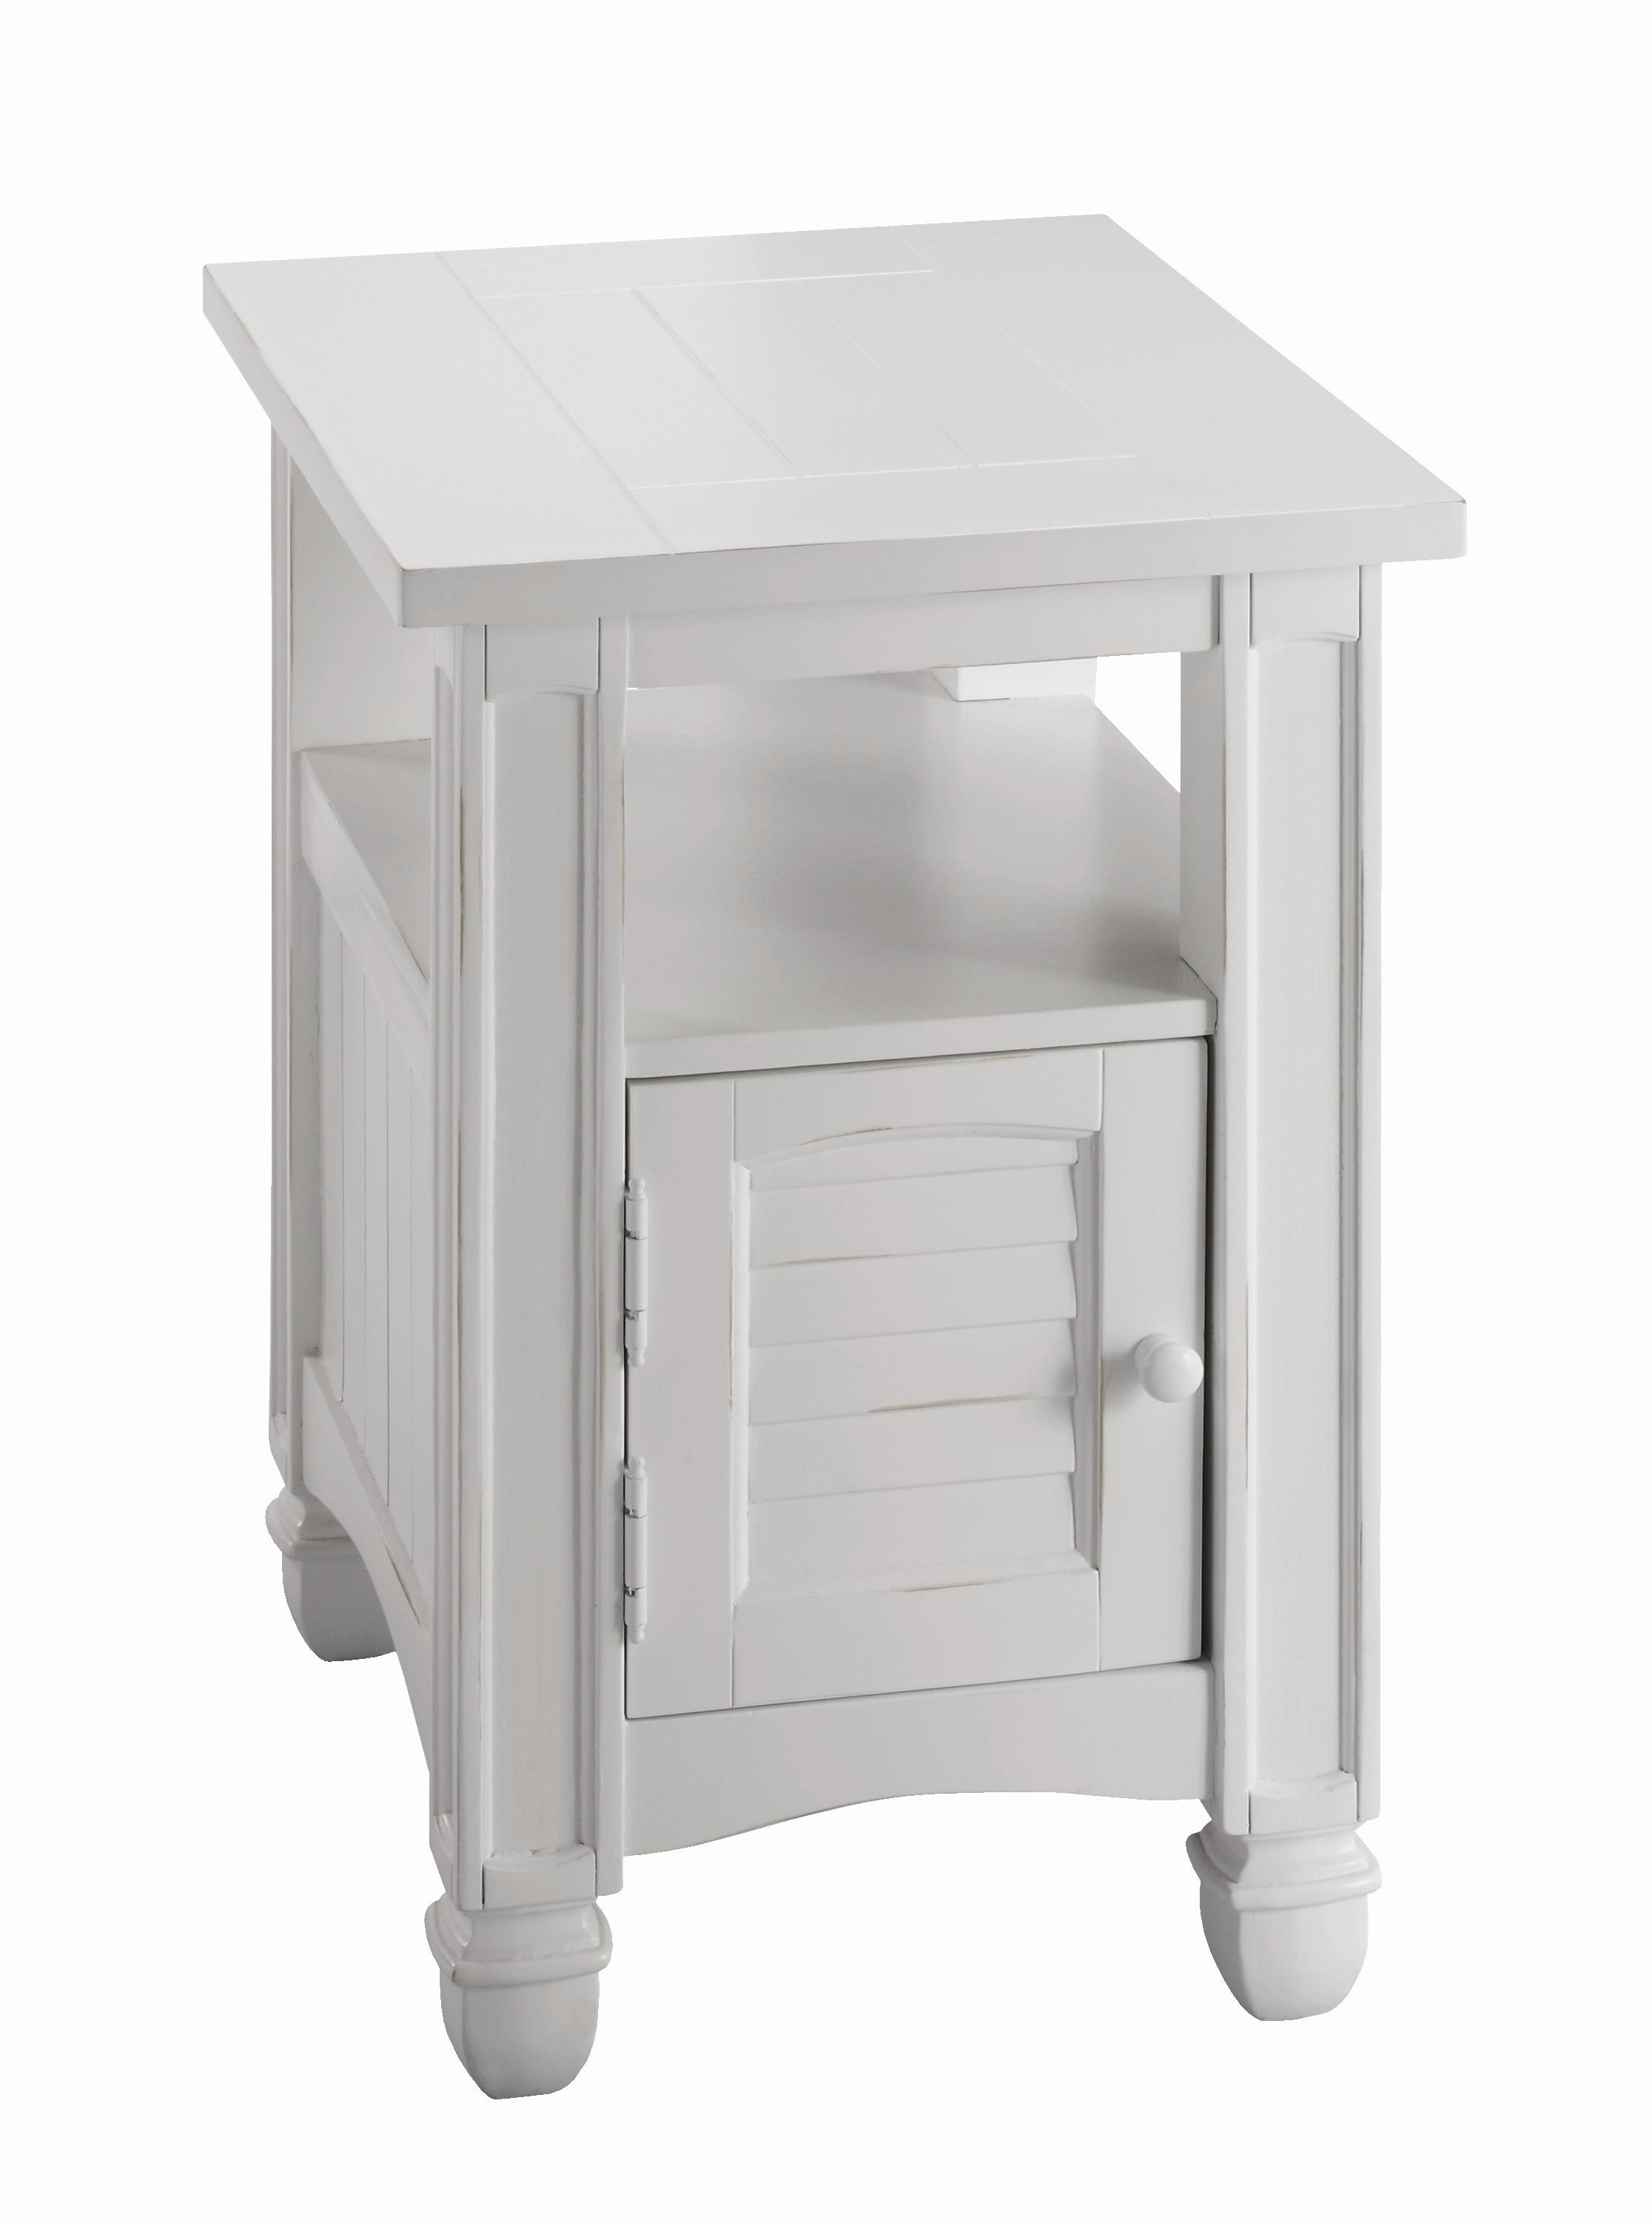 Stein World Casual - Nantucket Chairside Table - Item Number: 679-041